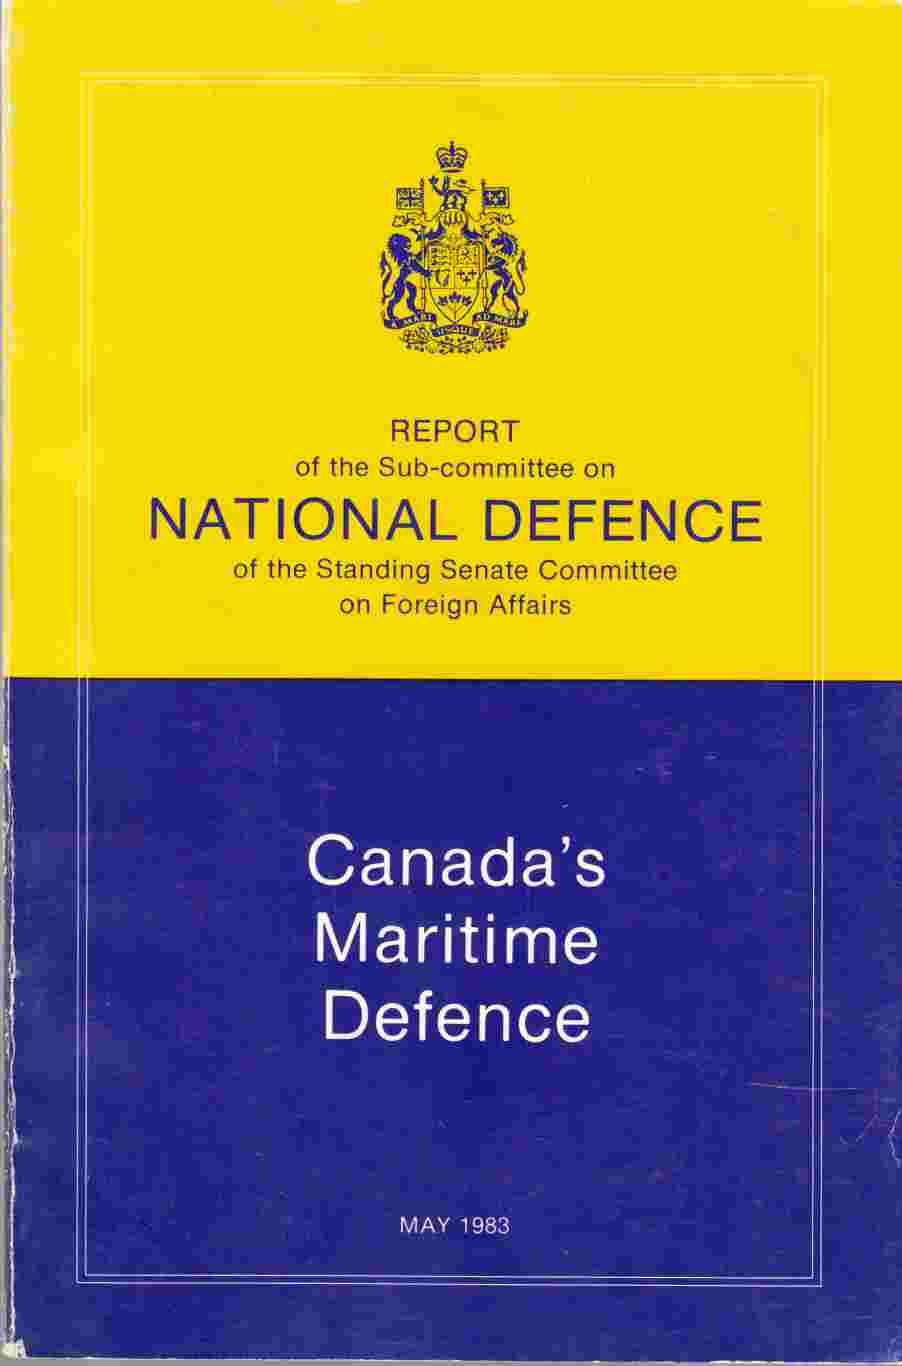 Image for Canada's Maritime Defence - Report of the Subcommittee on National Defence of the Standing Senate Committee on Foreign Affairs La Defense Maritime Du Canada - Rapport Du Sous-Comite Sur La Defense Nationale Du Comite Senatorial Permanent Des Affaires Etrangieres